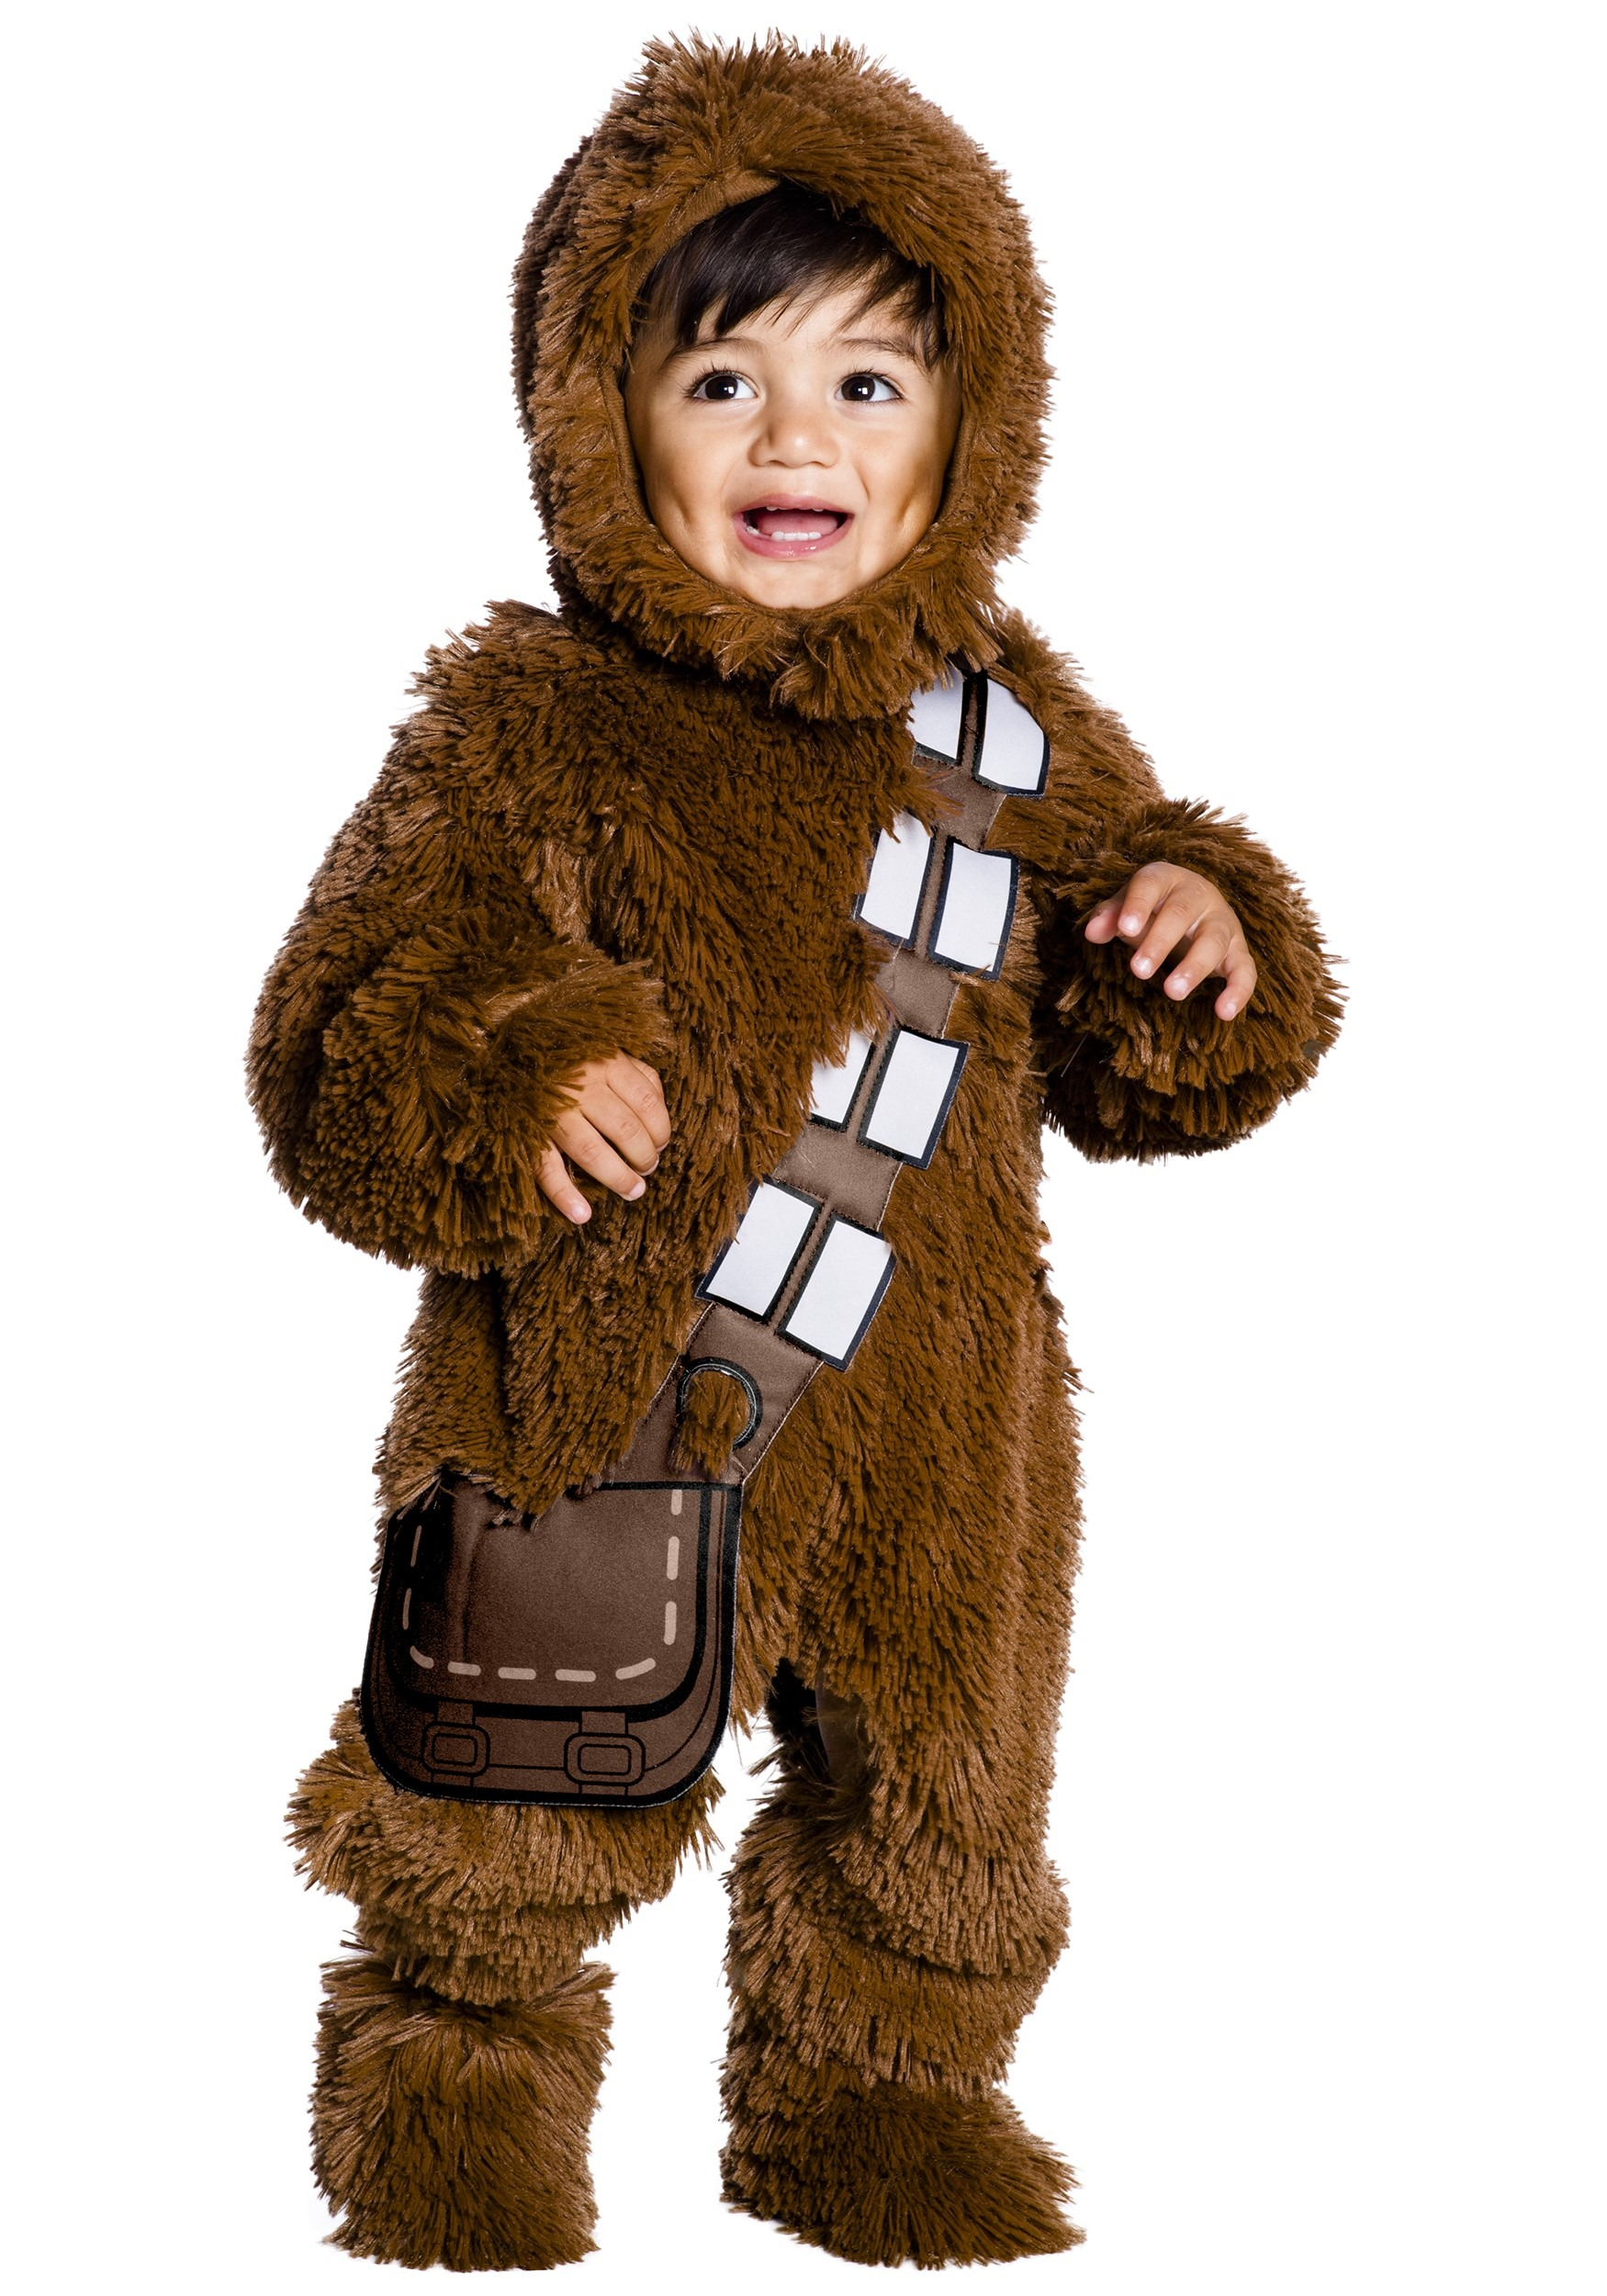 Toddler Deluxe Plush Costume Star Wars Chewbacca